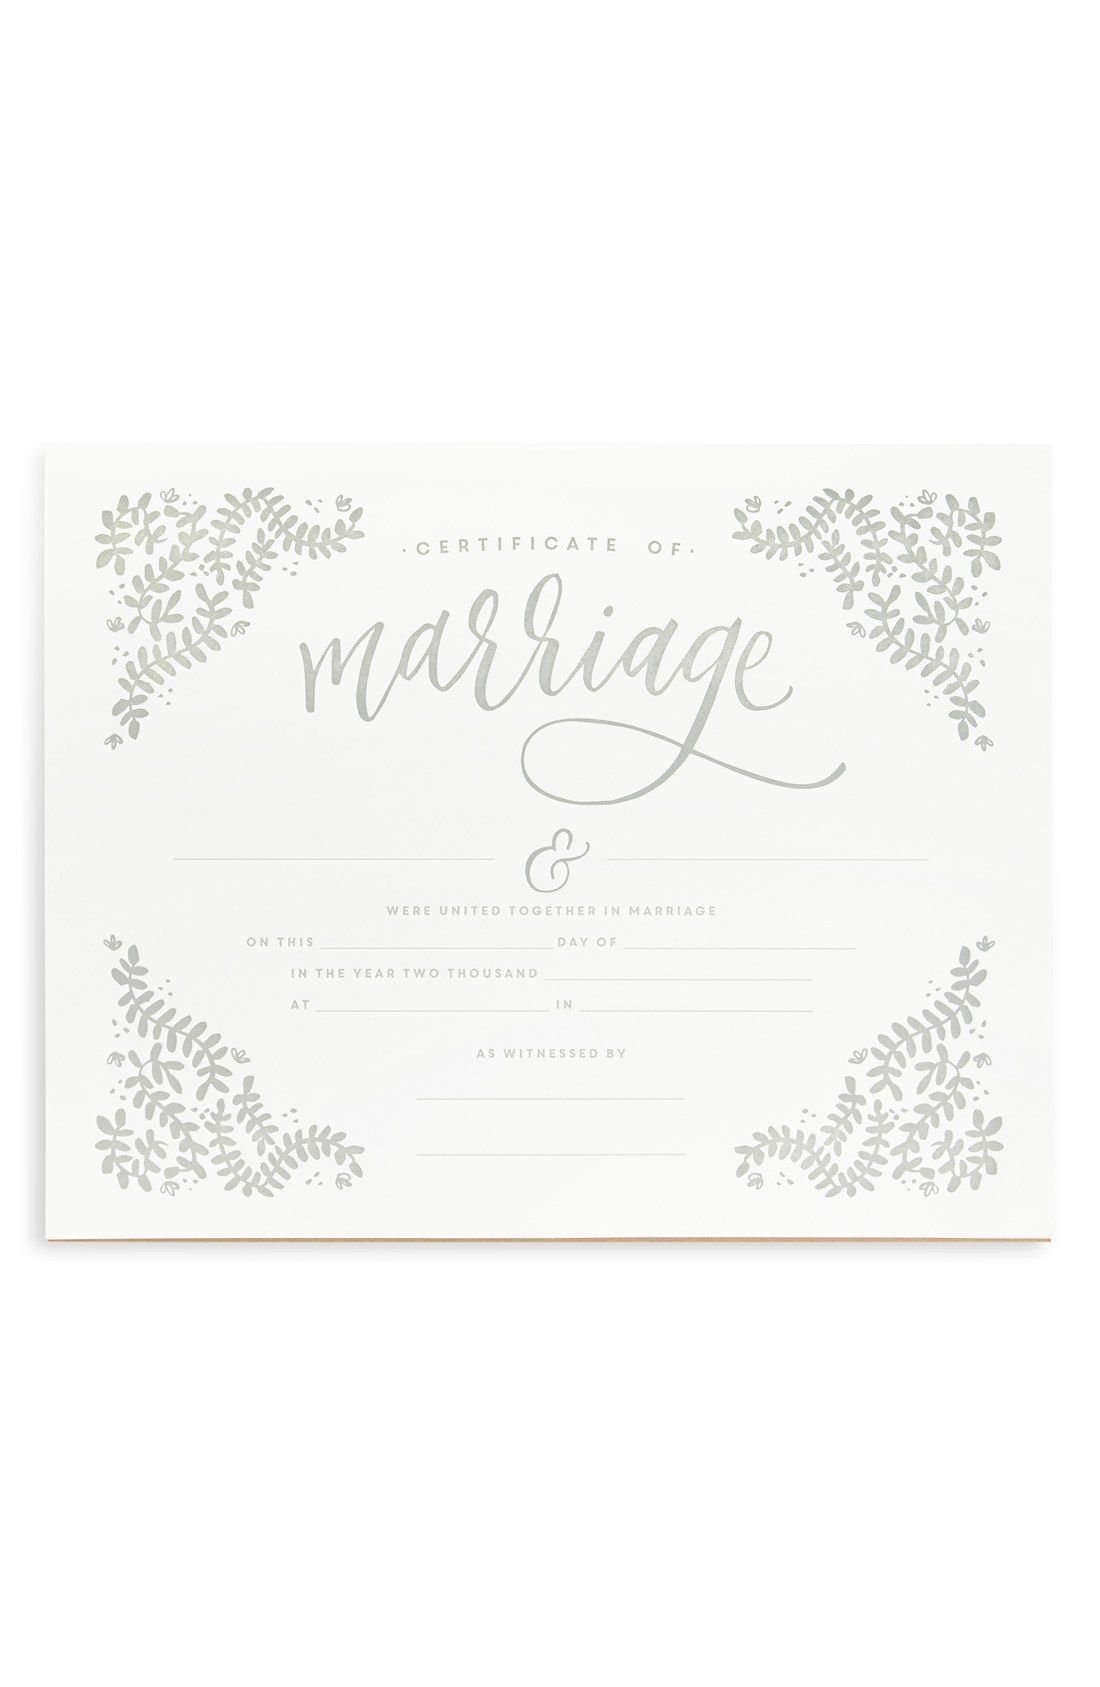 this elegant decorative marriage certificate is ideal for framing and serving as a treasured memento of the special day